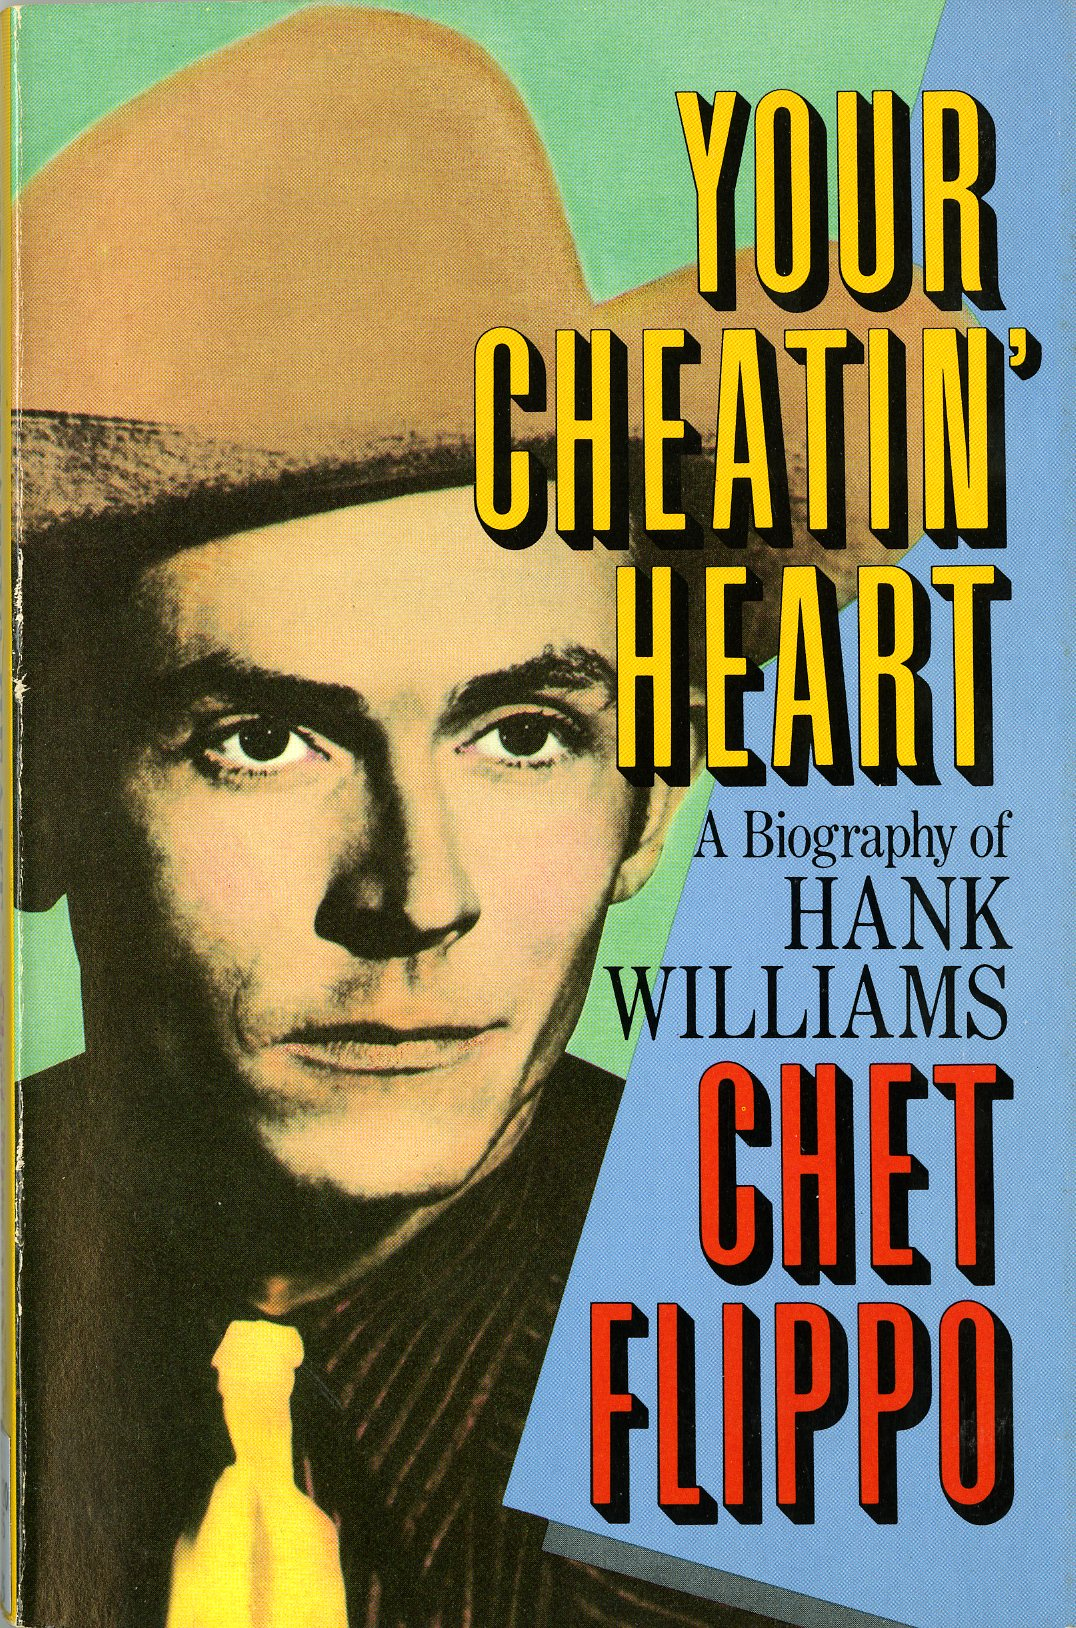 Your Cheatin' Heart: A Biography of Hank Williams by Chet Flippo, SFC call no. ML420 .W55 F6 1985